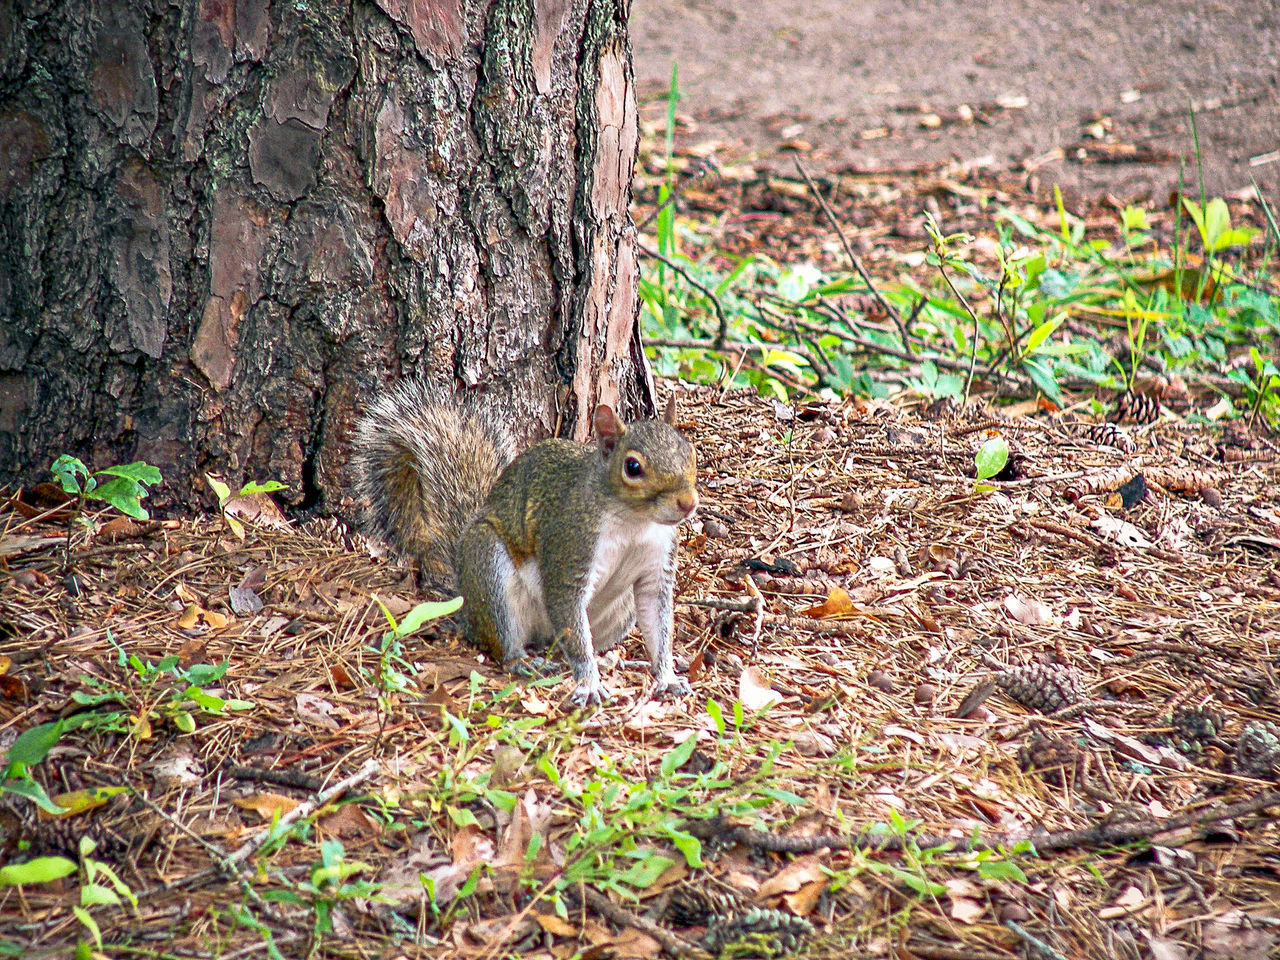 Animal Animal Themes Animal Wildlife Animals In The Wild Close-up Day Eating Food Mammal Nature No People One Animal Outdoors Rodent Squirrel